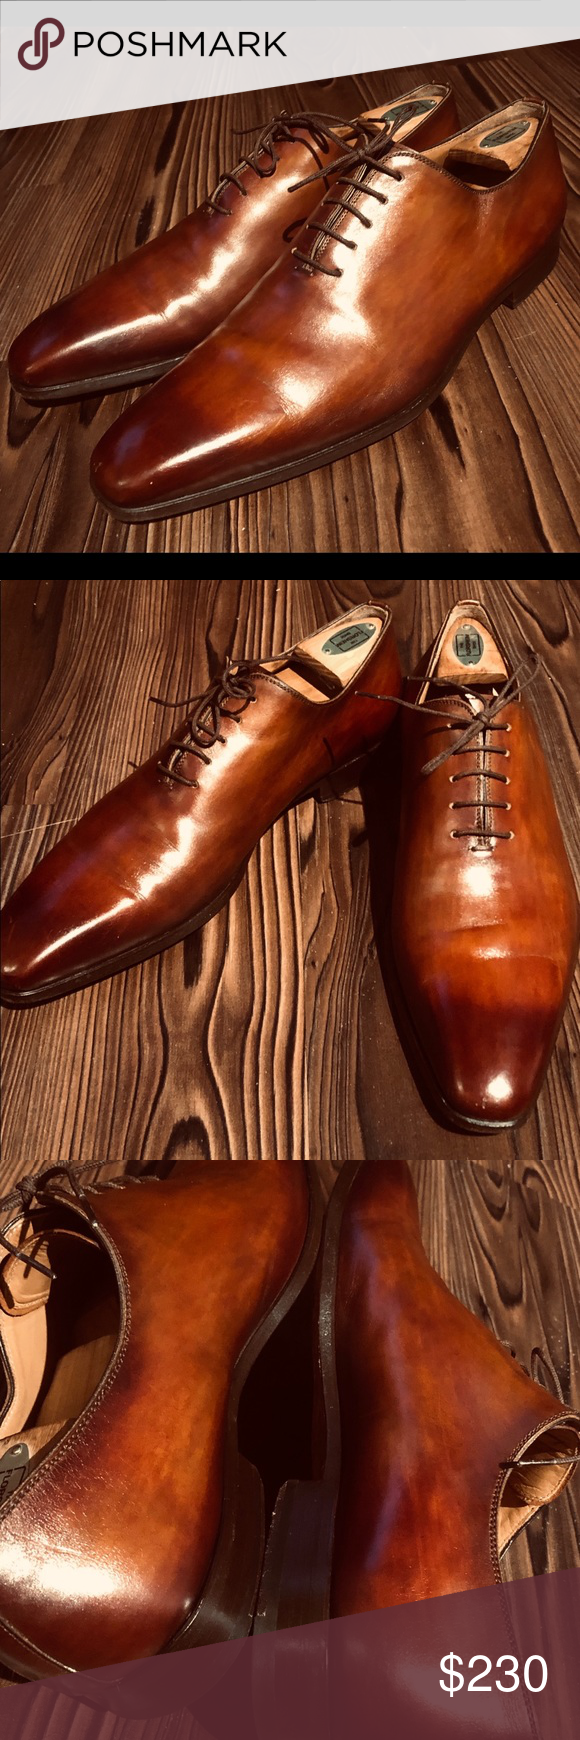 Magnanni Holecut Sz 10 burnished toe made in Spain Magnanni Holecuts oxfords in ...